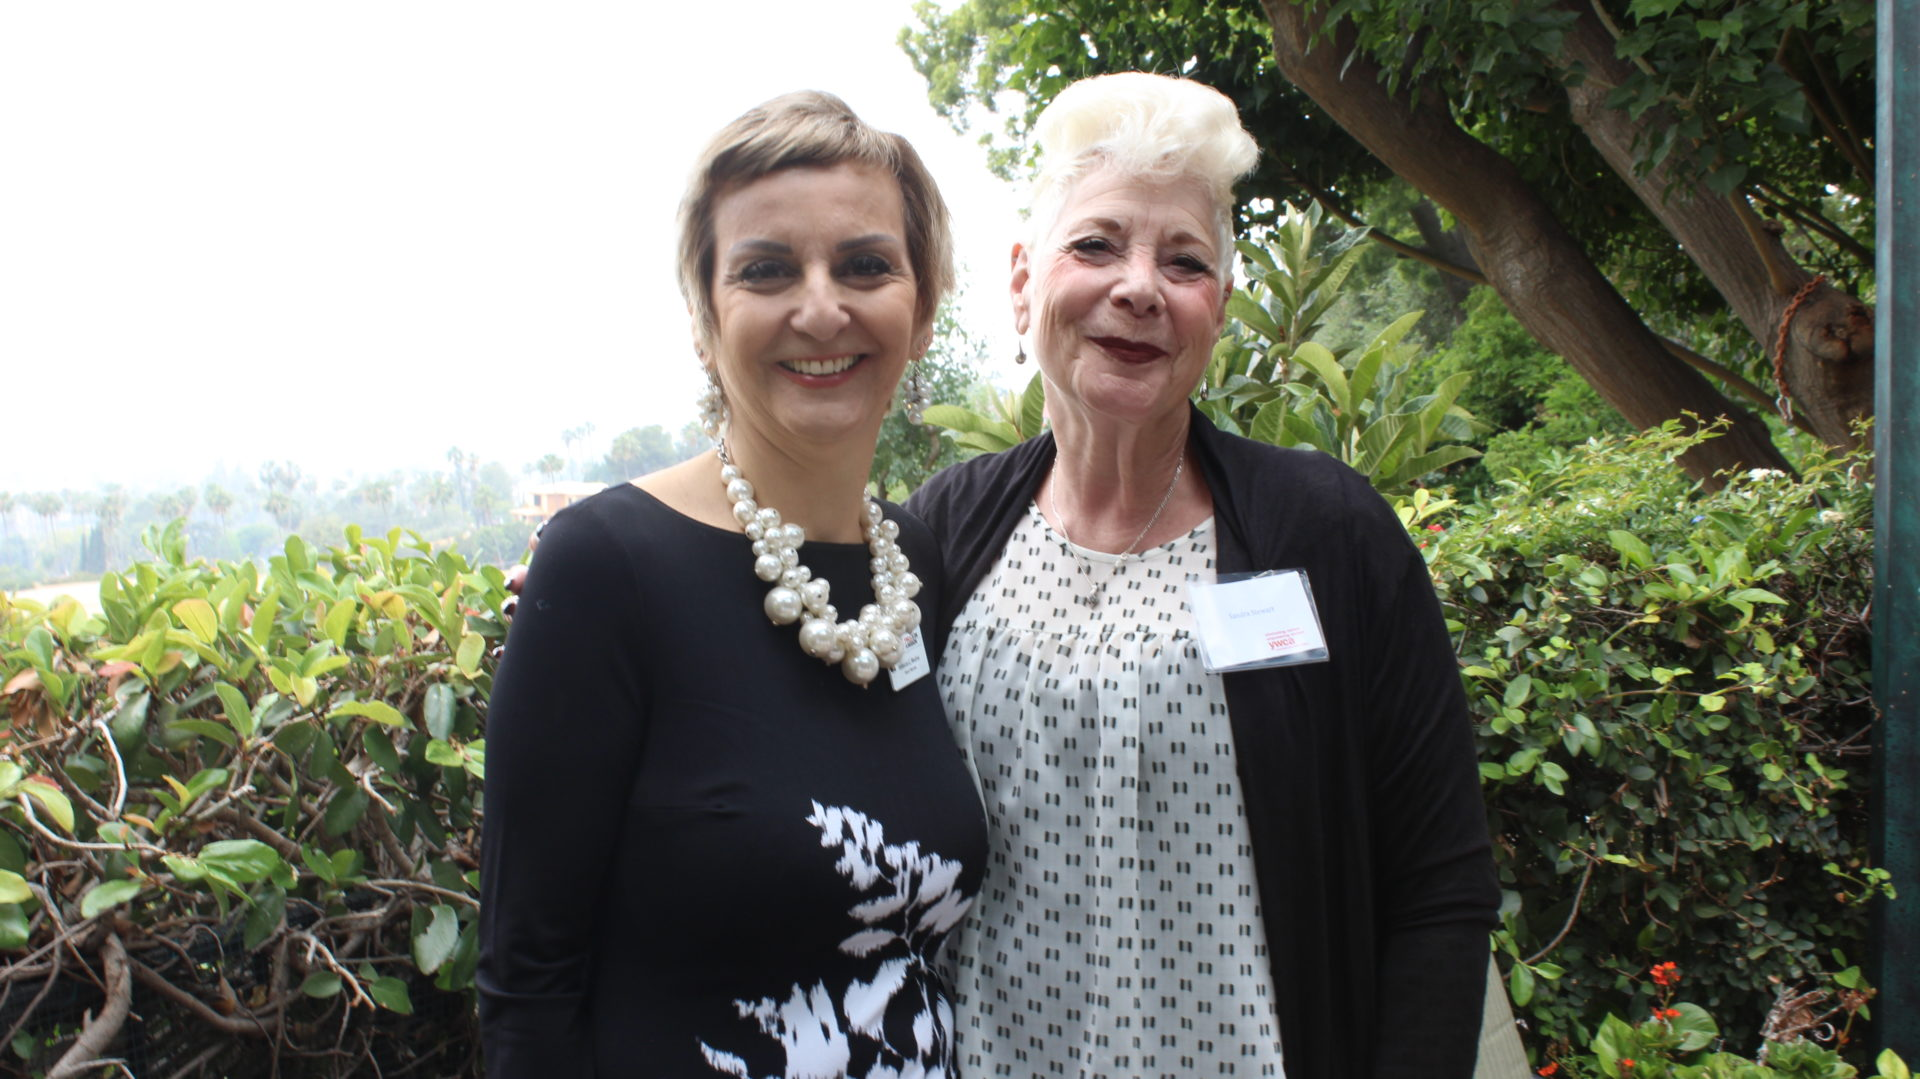 Sandra and Rebecca at the Because of You Donor Event